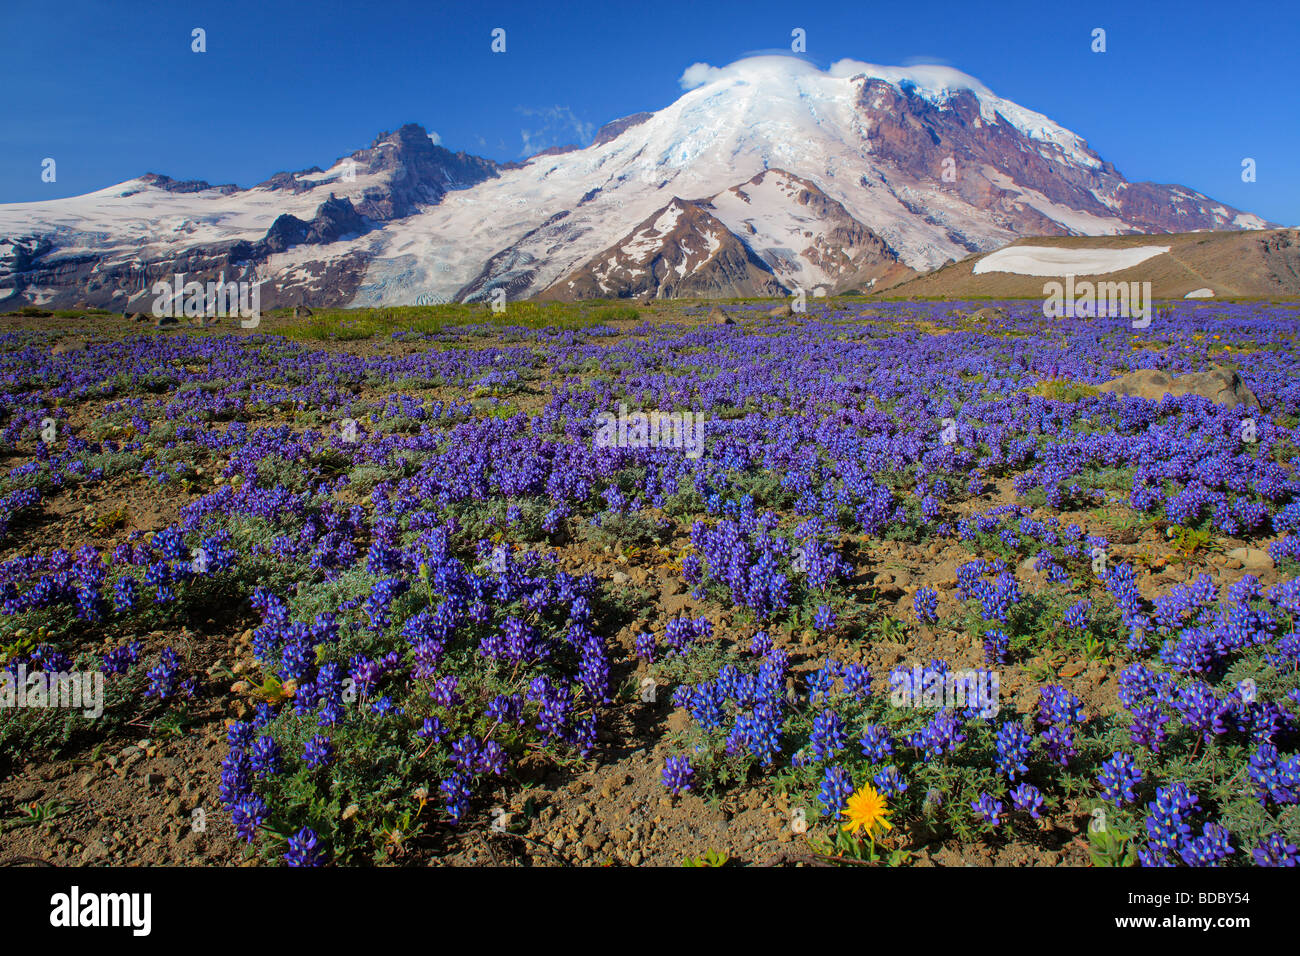 Carpet of lupines on 1st Burrough Mountain in Mount Rainier National Park in Western Washington, USA - Stock Image